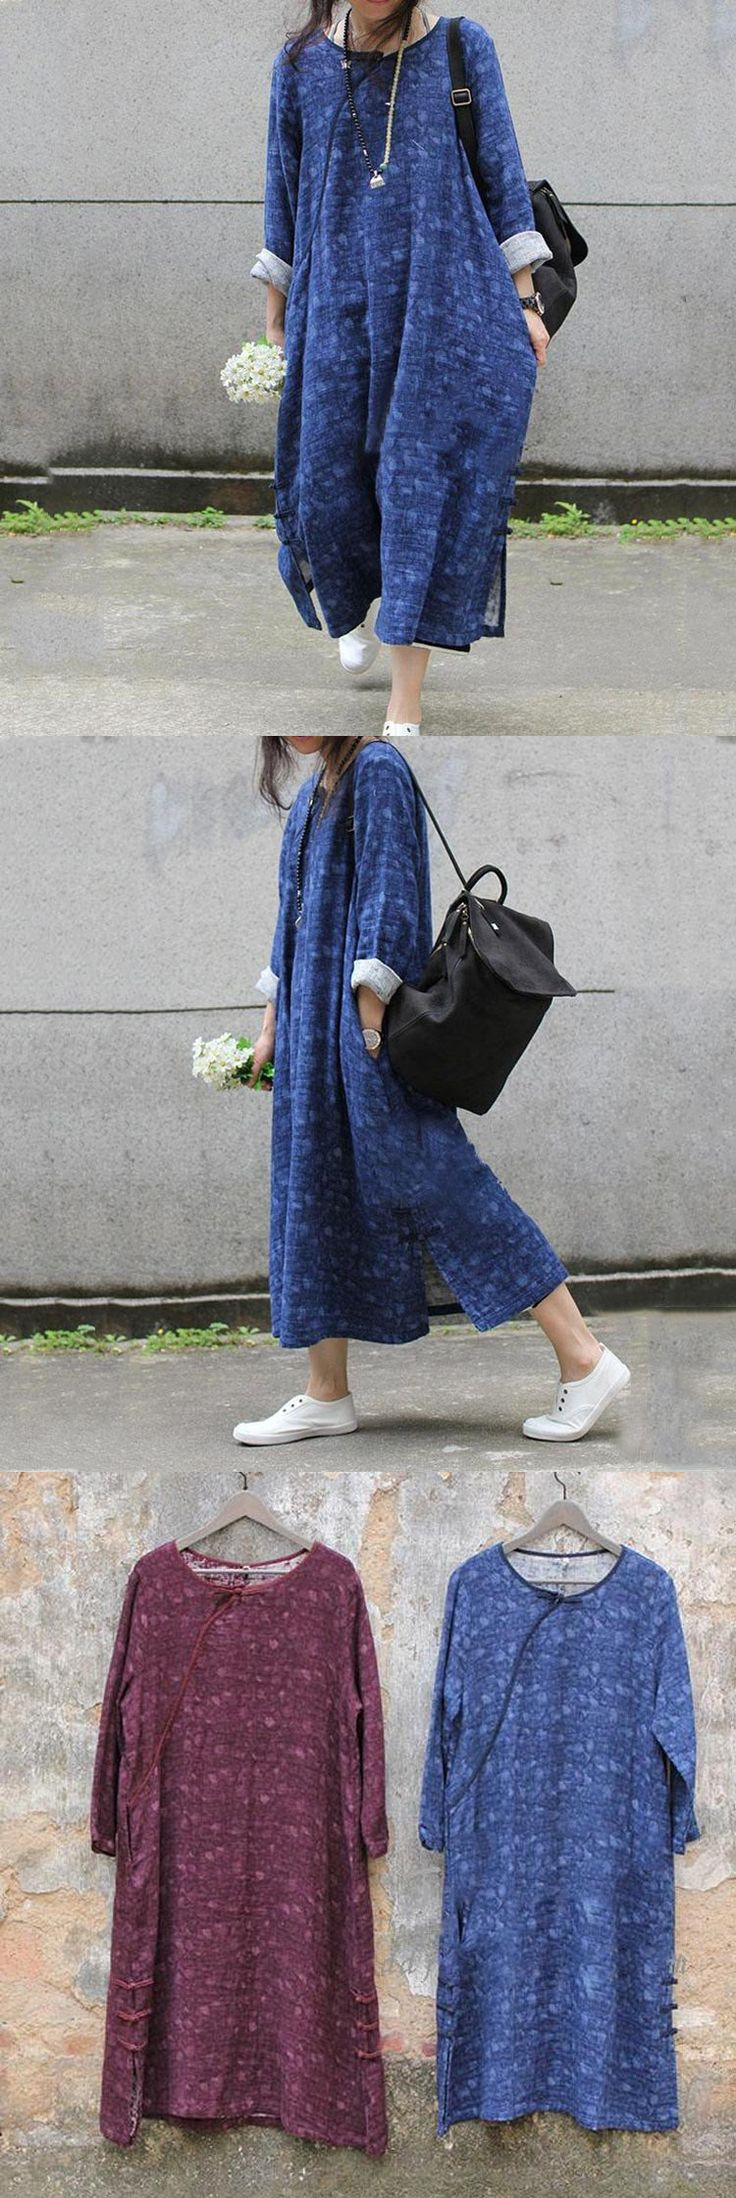 Flash sales: Women cotton linen loose autumn print dress. It's made of cotton and linnen fabric.now A Big Discount! what are u waiting for ? just do it!!! buykud.com